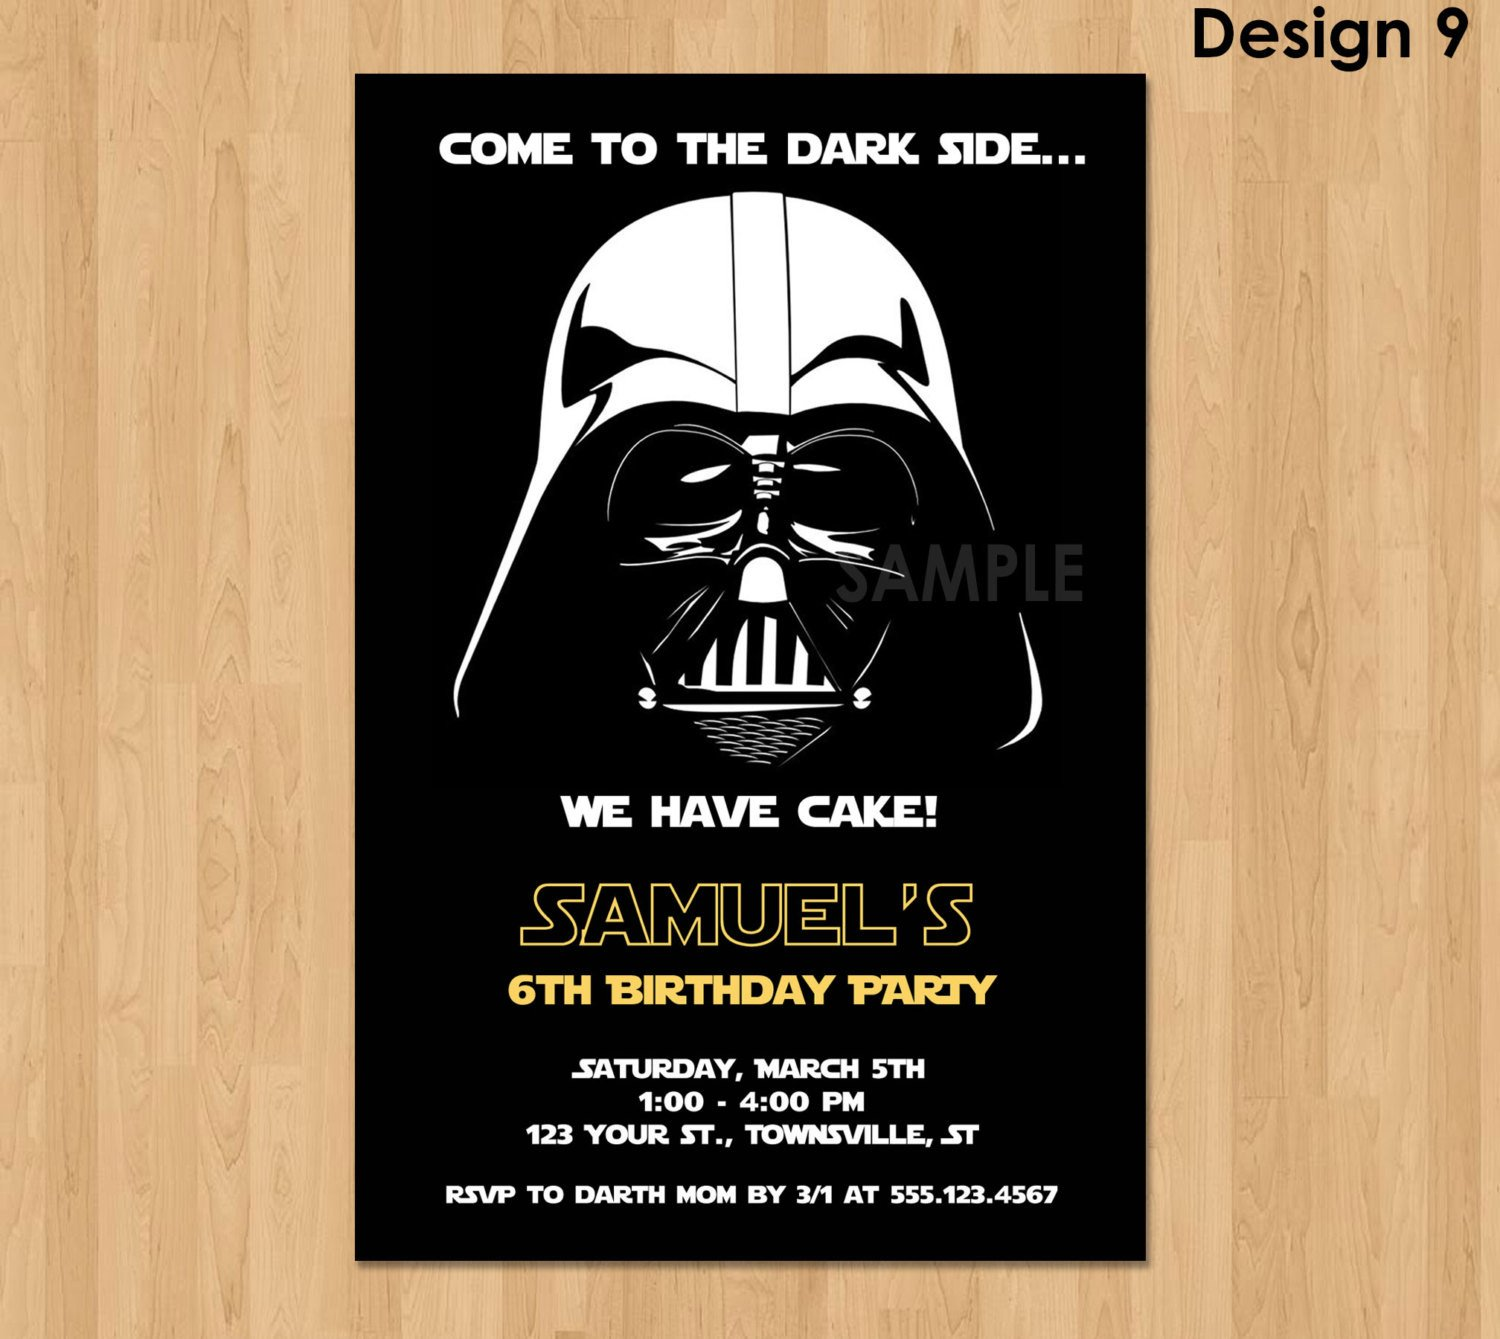 Star Wars Birthday Invitation Darth Vader Invitation Star Wars Birthday Invitation Star